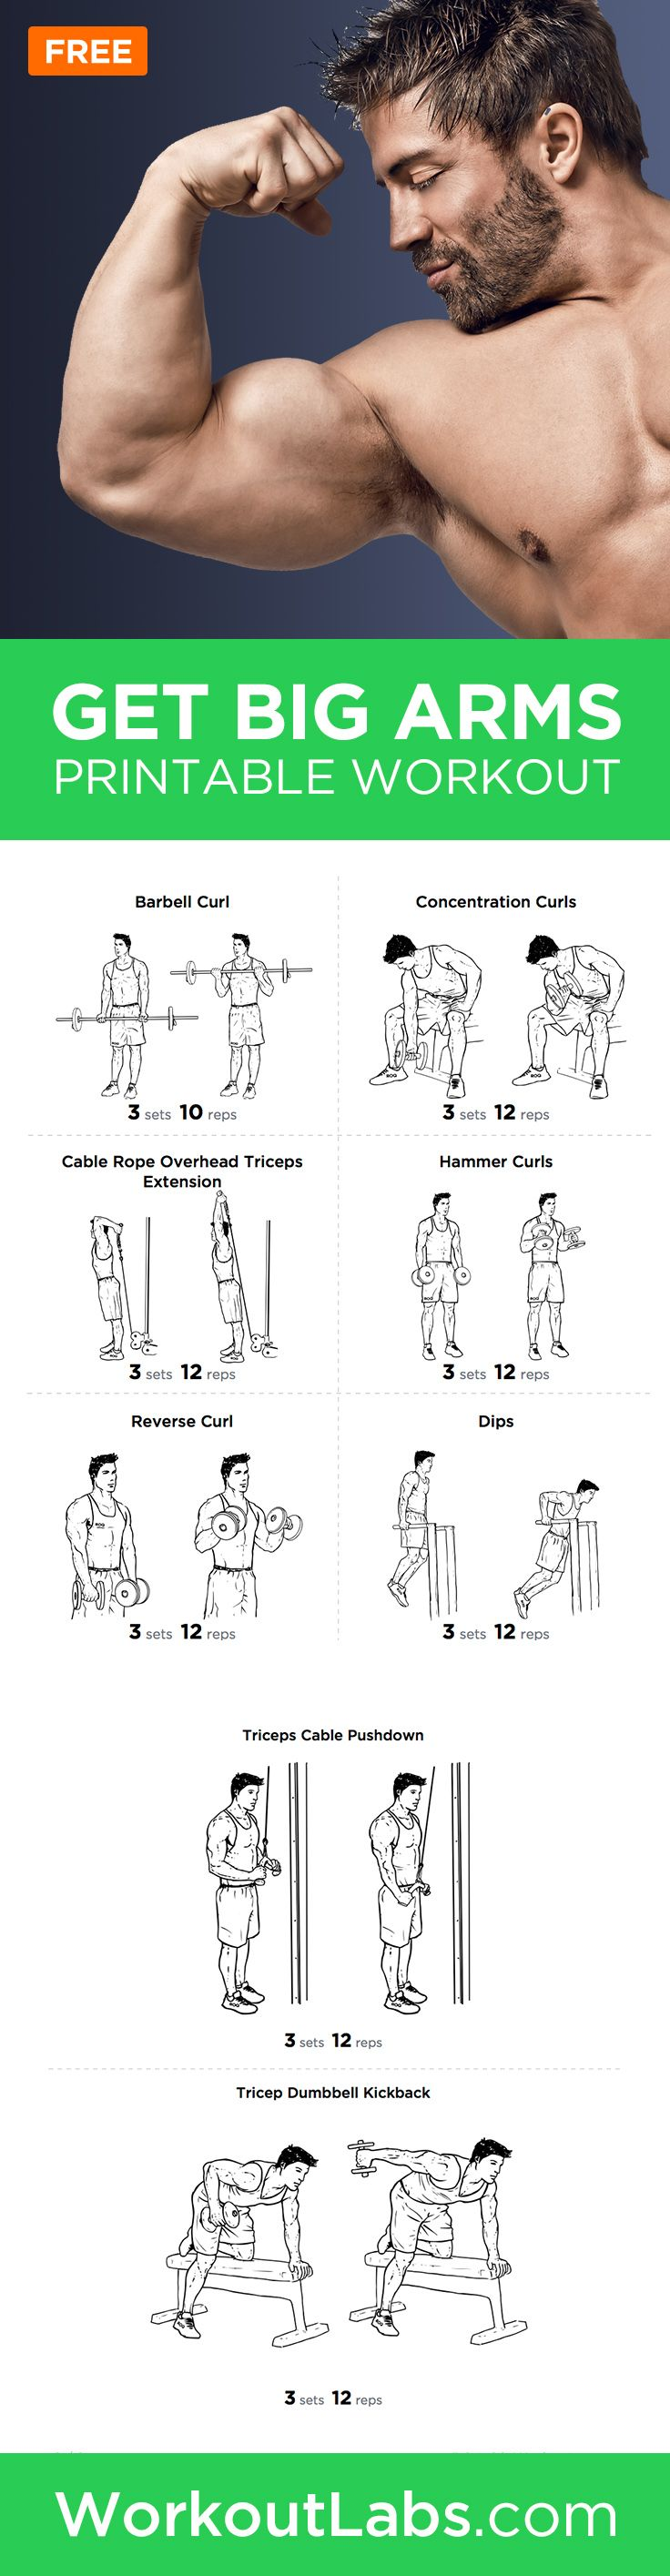 Big Arms Workout: Biceps and Triceps Exercises Printable Routine – Summer is just around the corner, so it's time to show off arms that are ripped and toned with this high intensity workout. http://papasteves.com